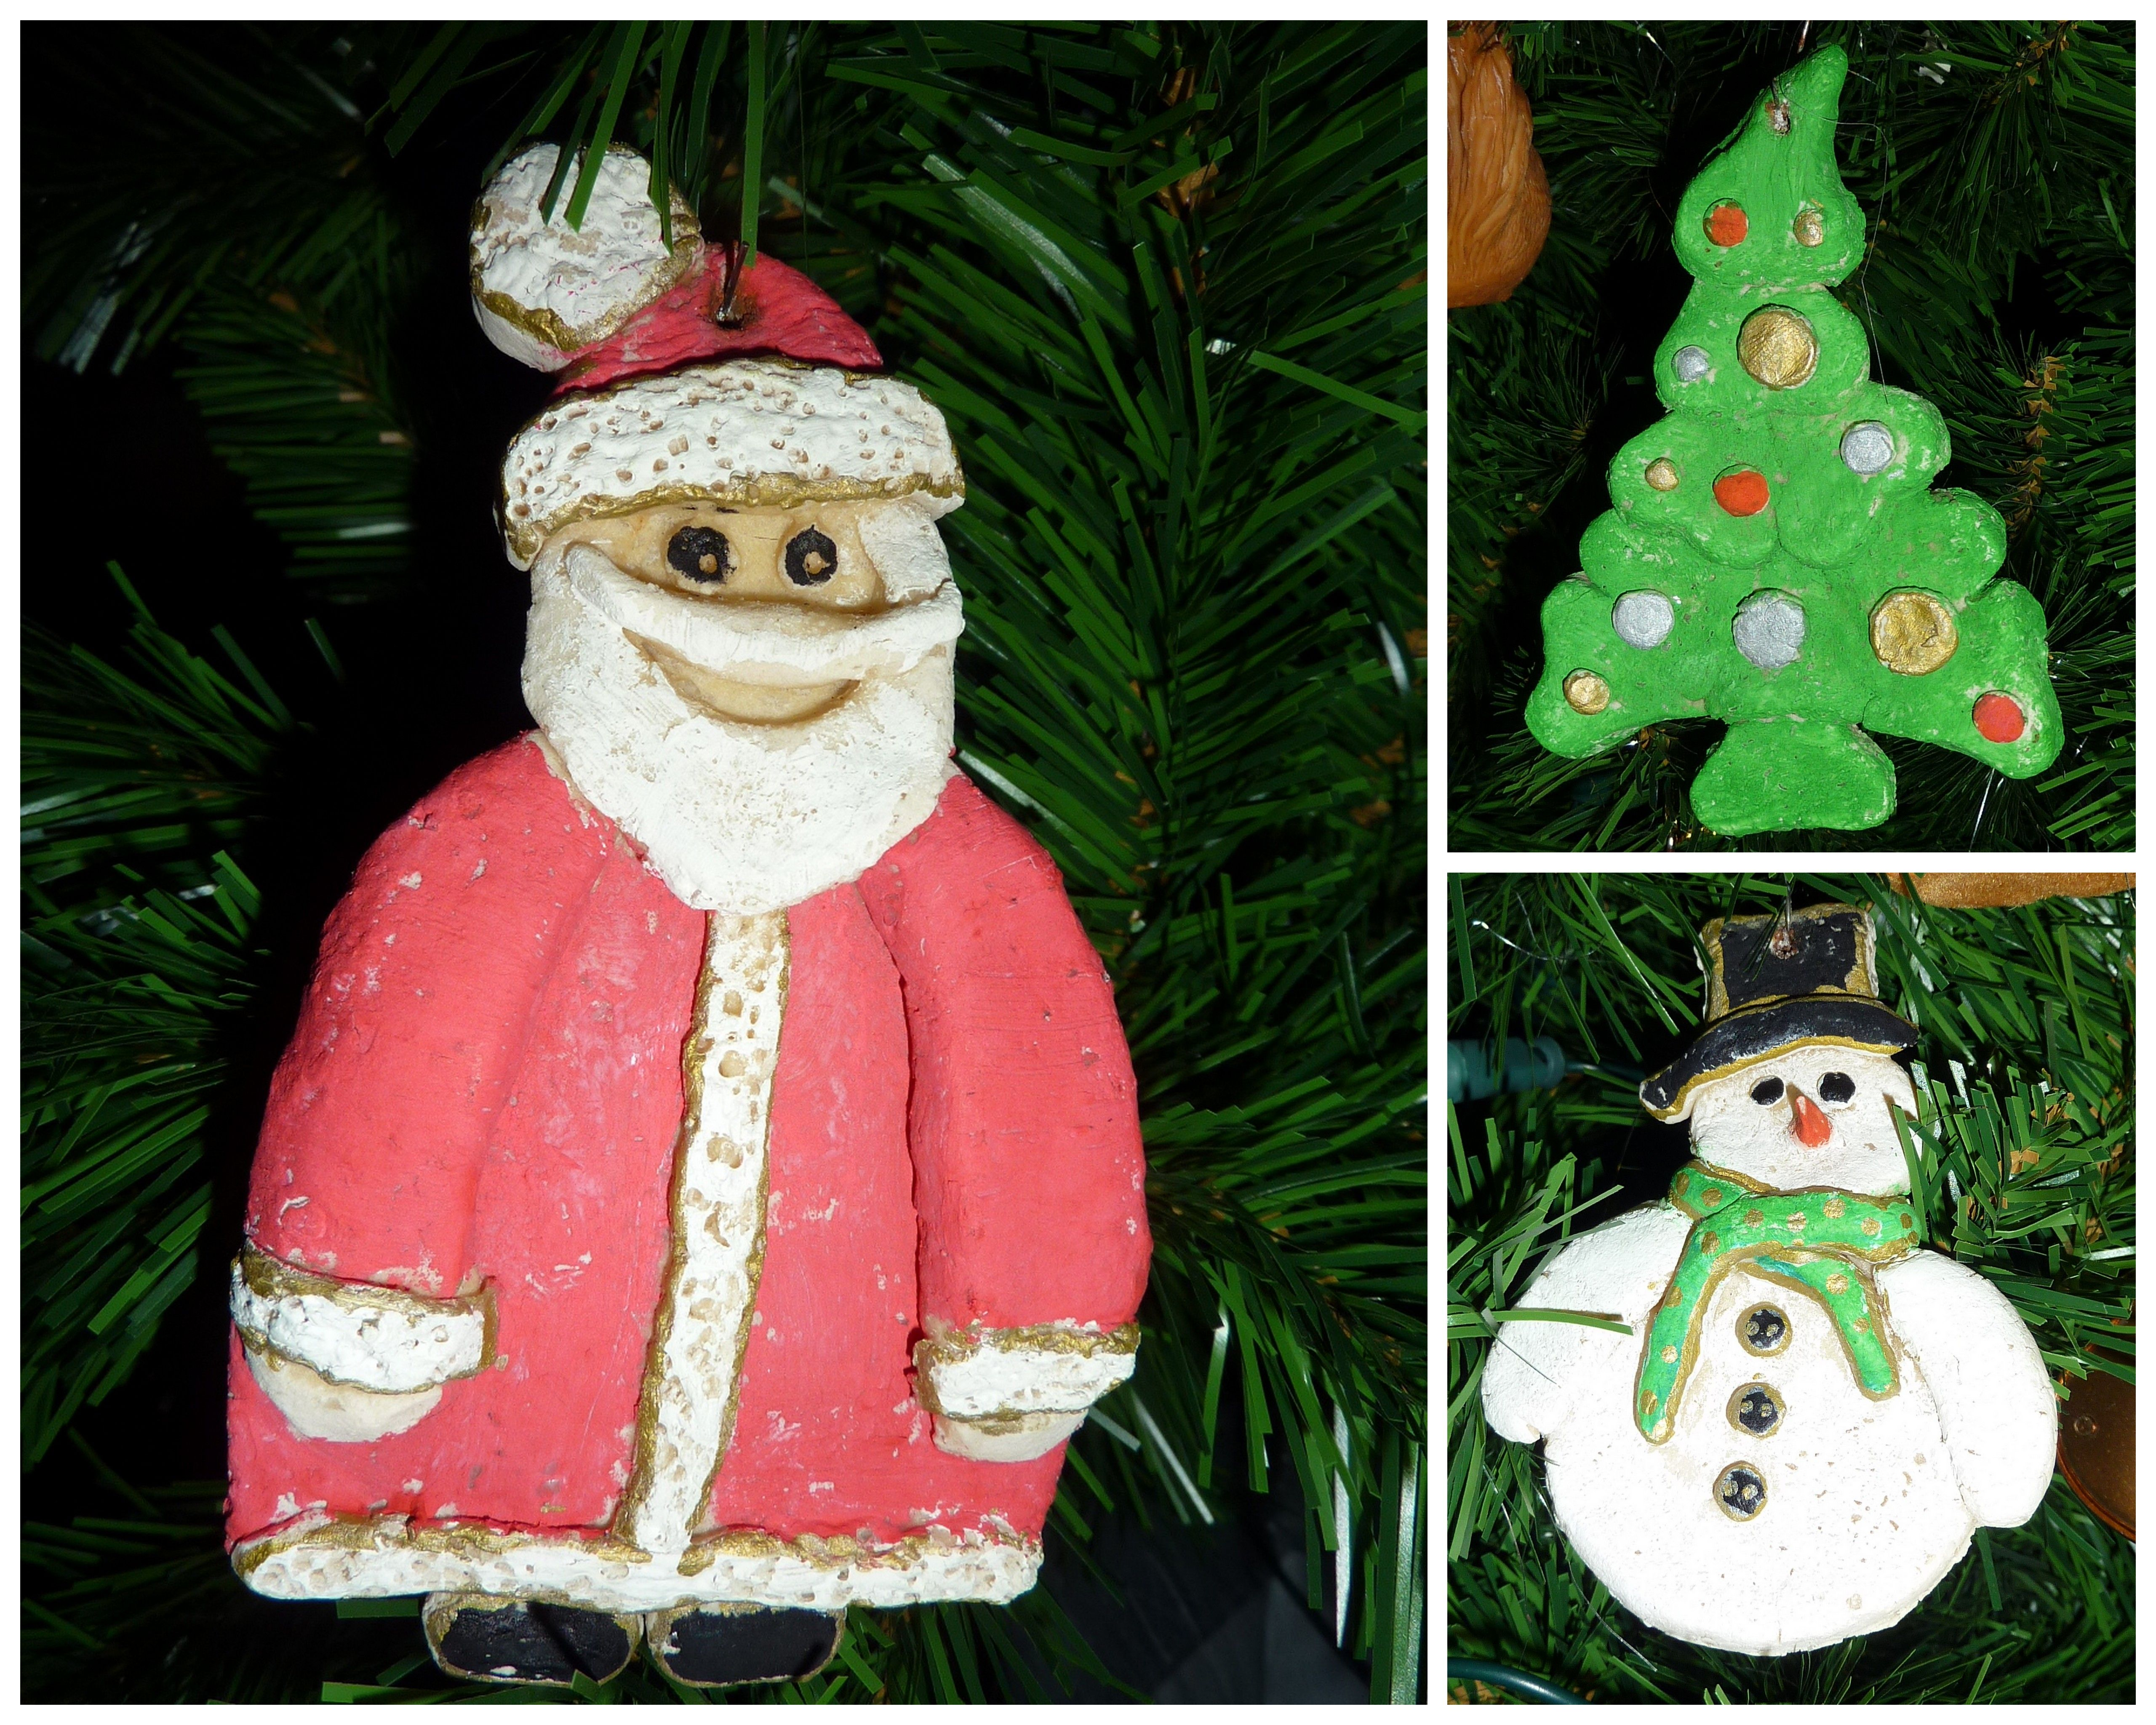 made of bread dough | Christmas crafts, Crafts, Christmas ...